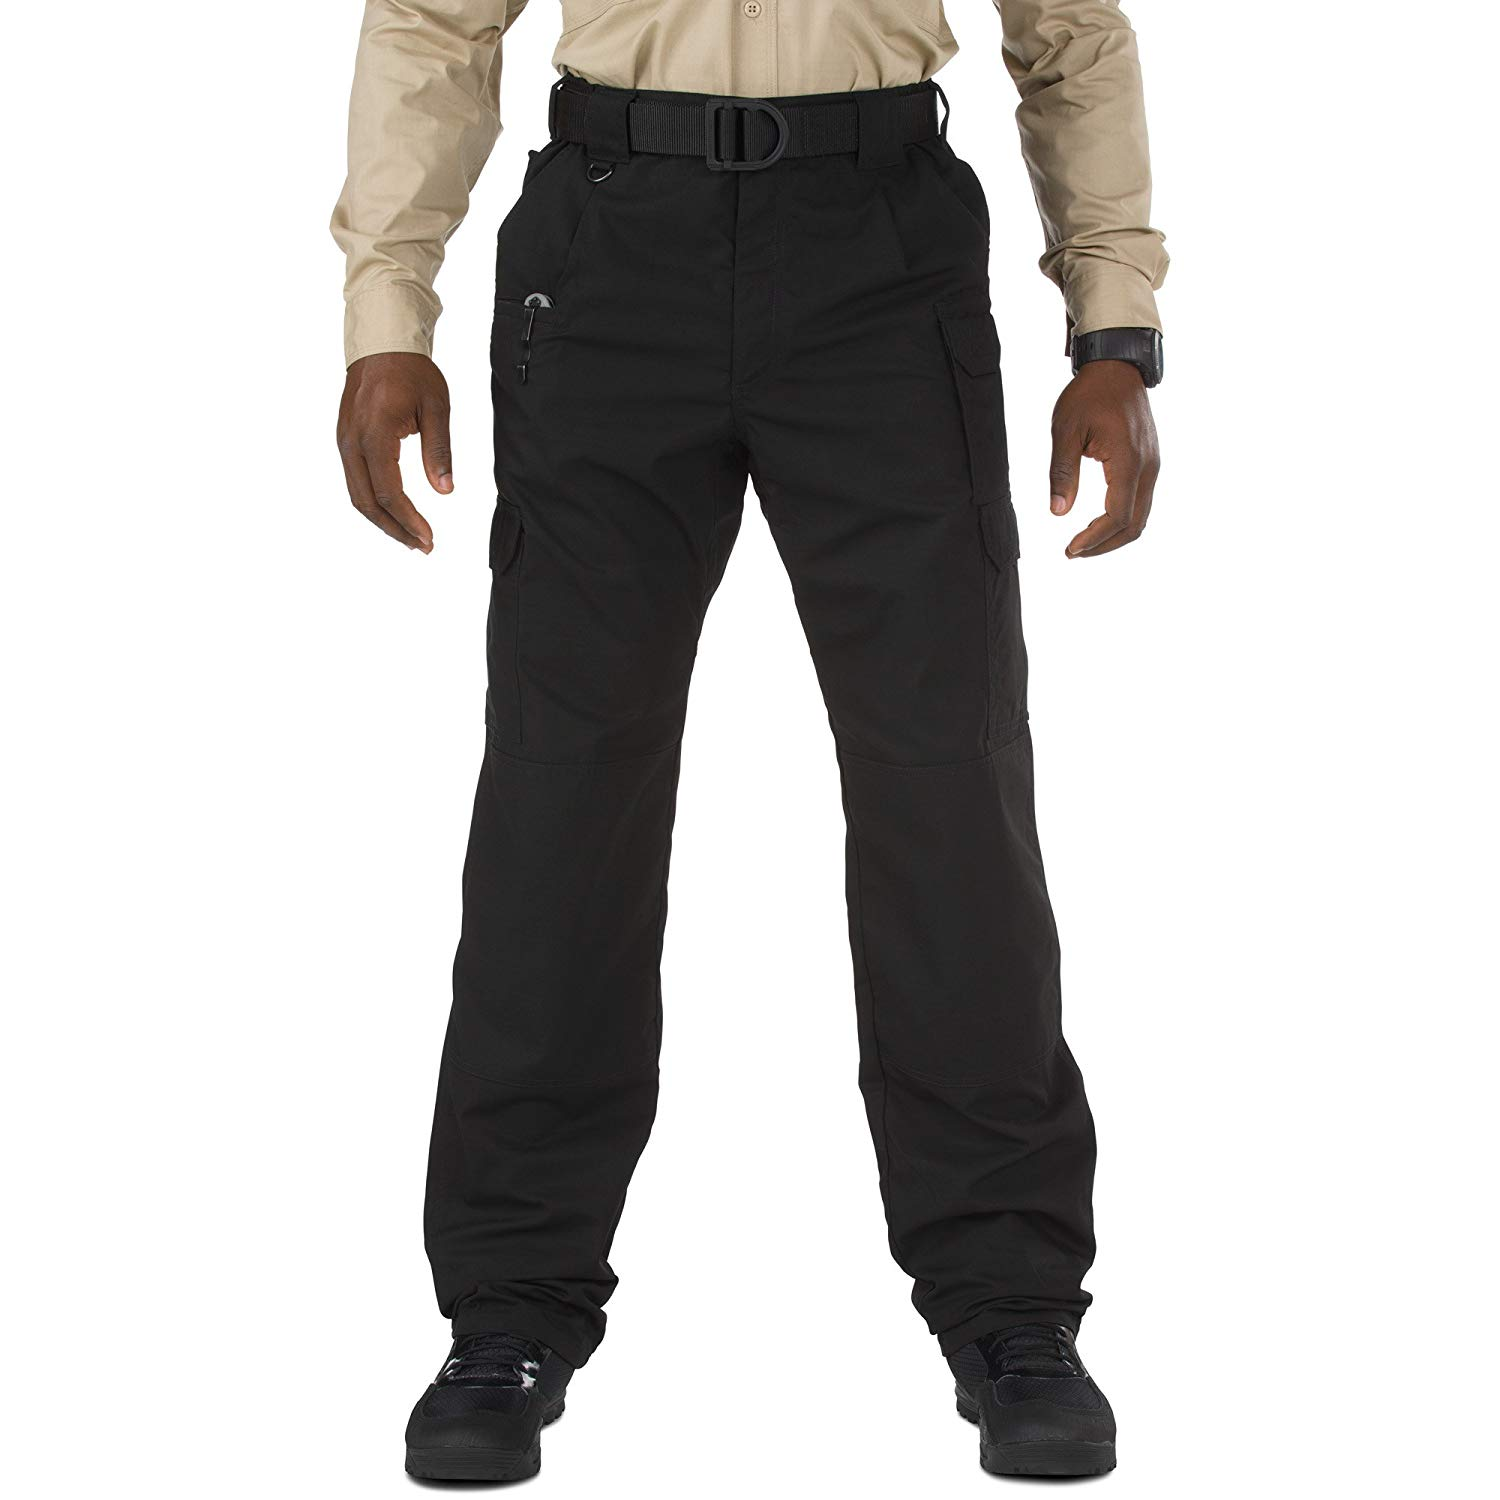 best hiking pants for men - Taclite Pro